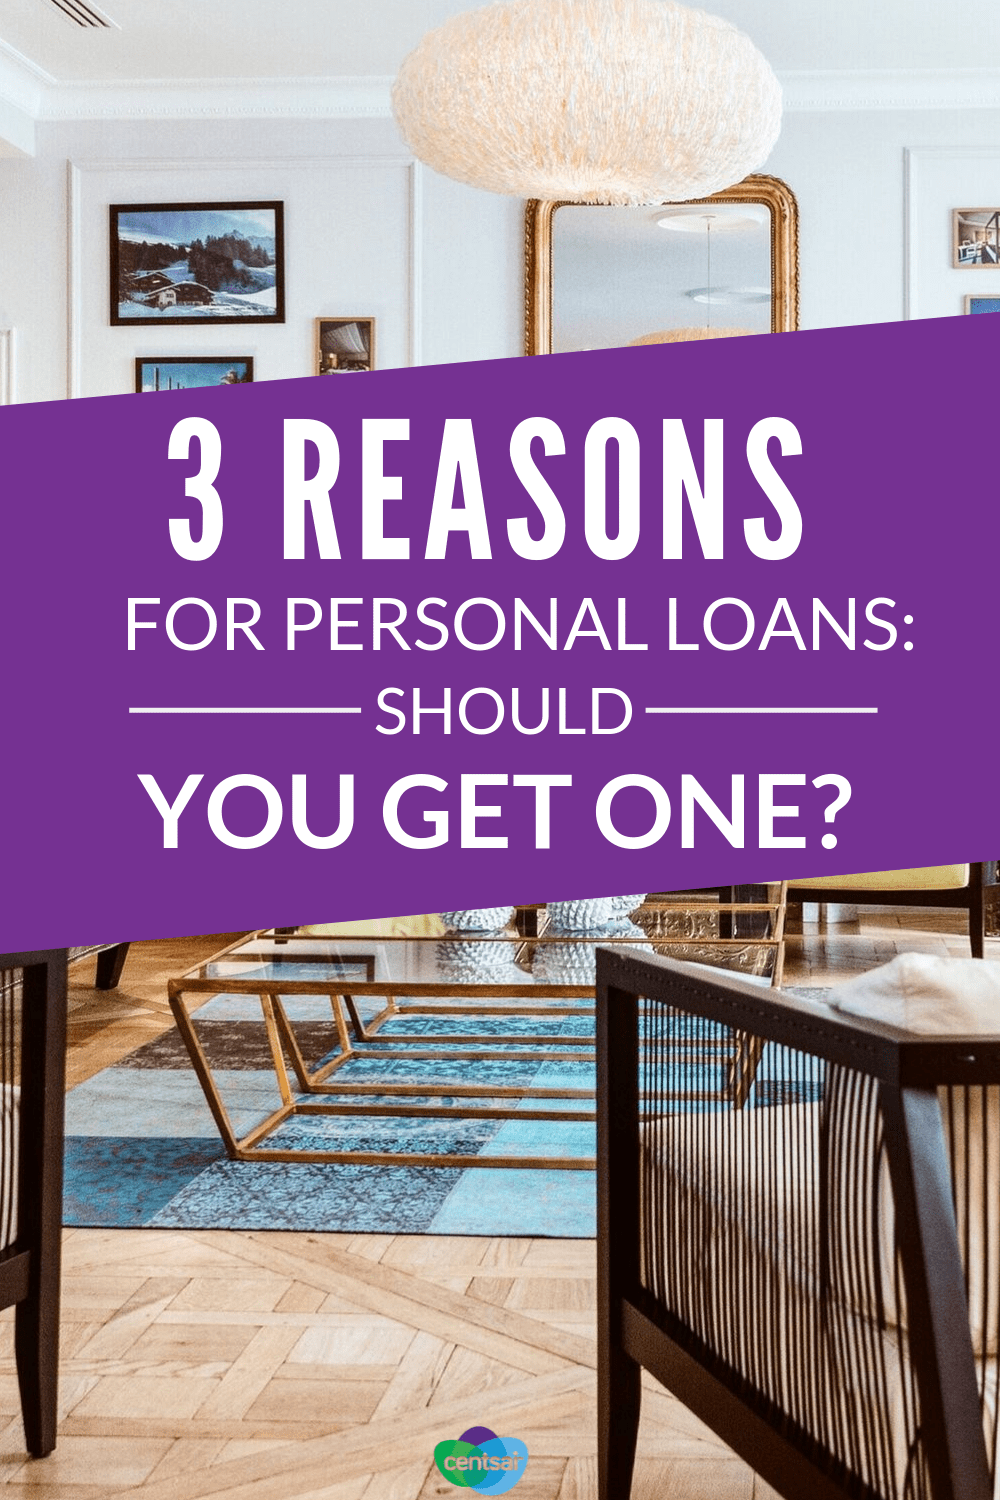 3 Reasons for Personal Loans: Should You Get One? Not sure whether taking on debt is a good idea? Check out the top reasons for personal loans and see these tips whether one might be right for you. #finance #personalloan #loan